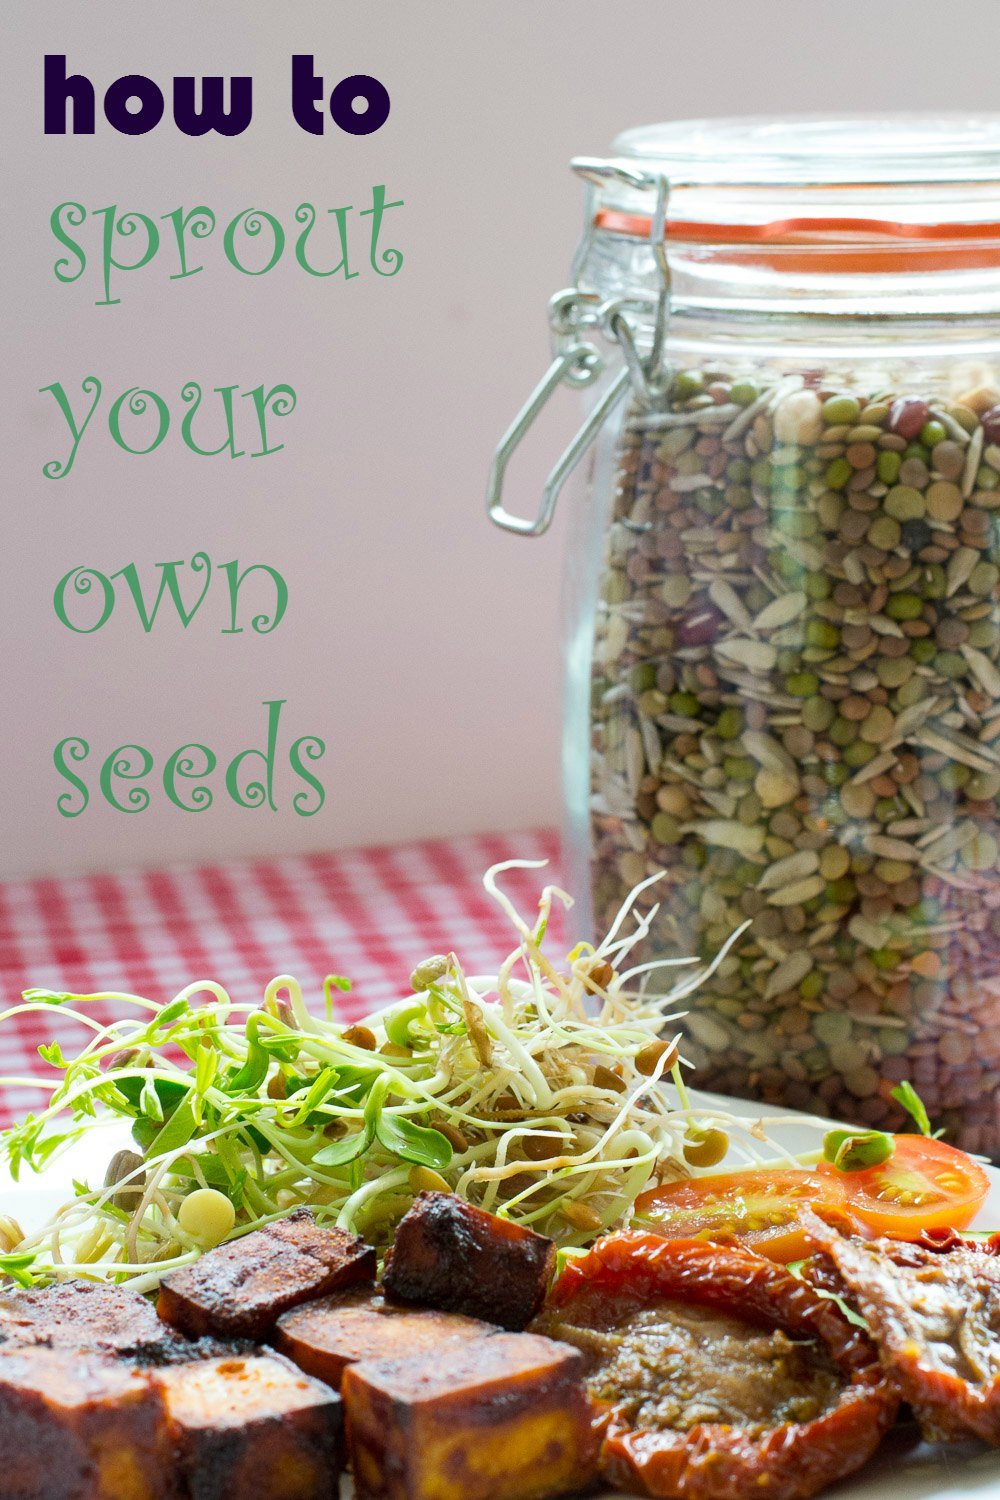 How to sprout your own seeds, grains and pulses